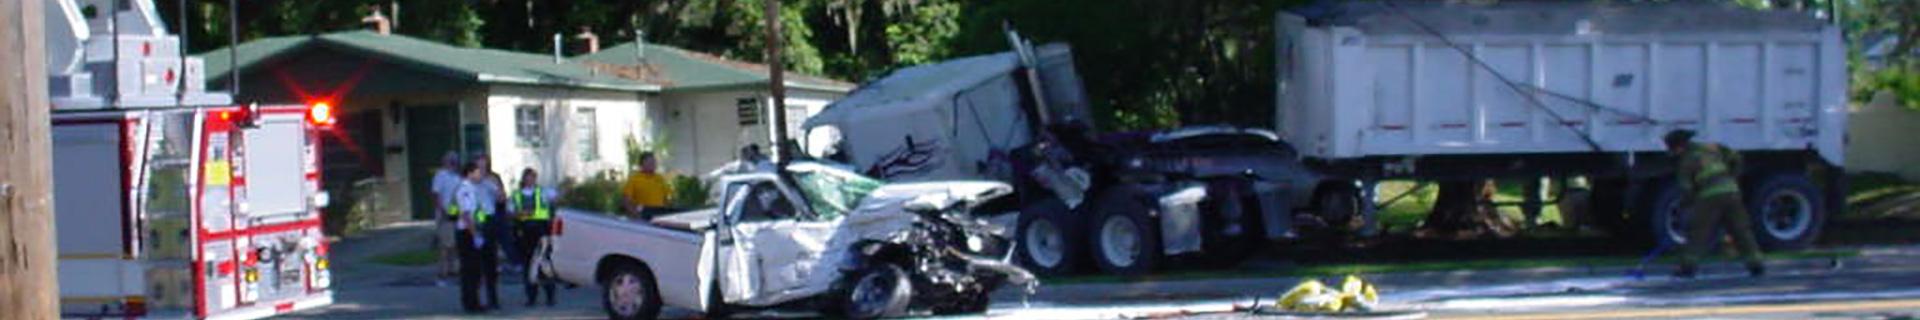 truck and tractor trailer crash site